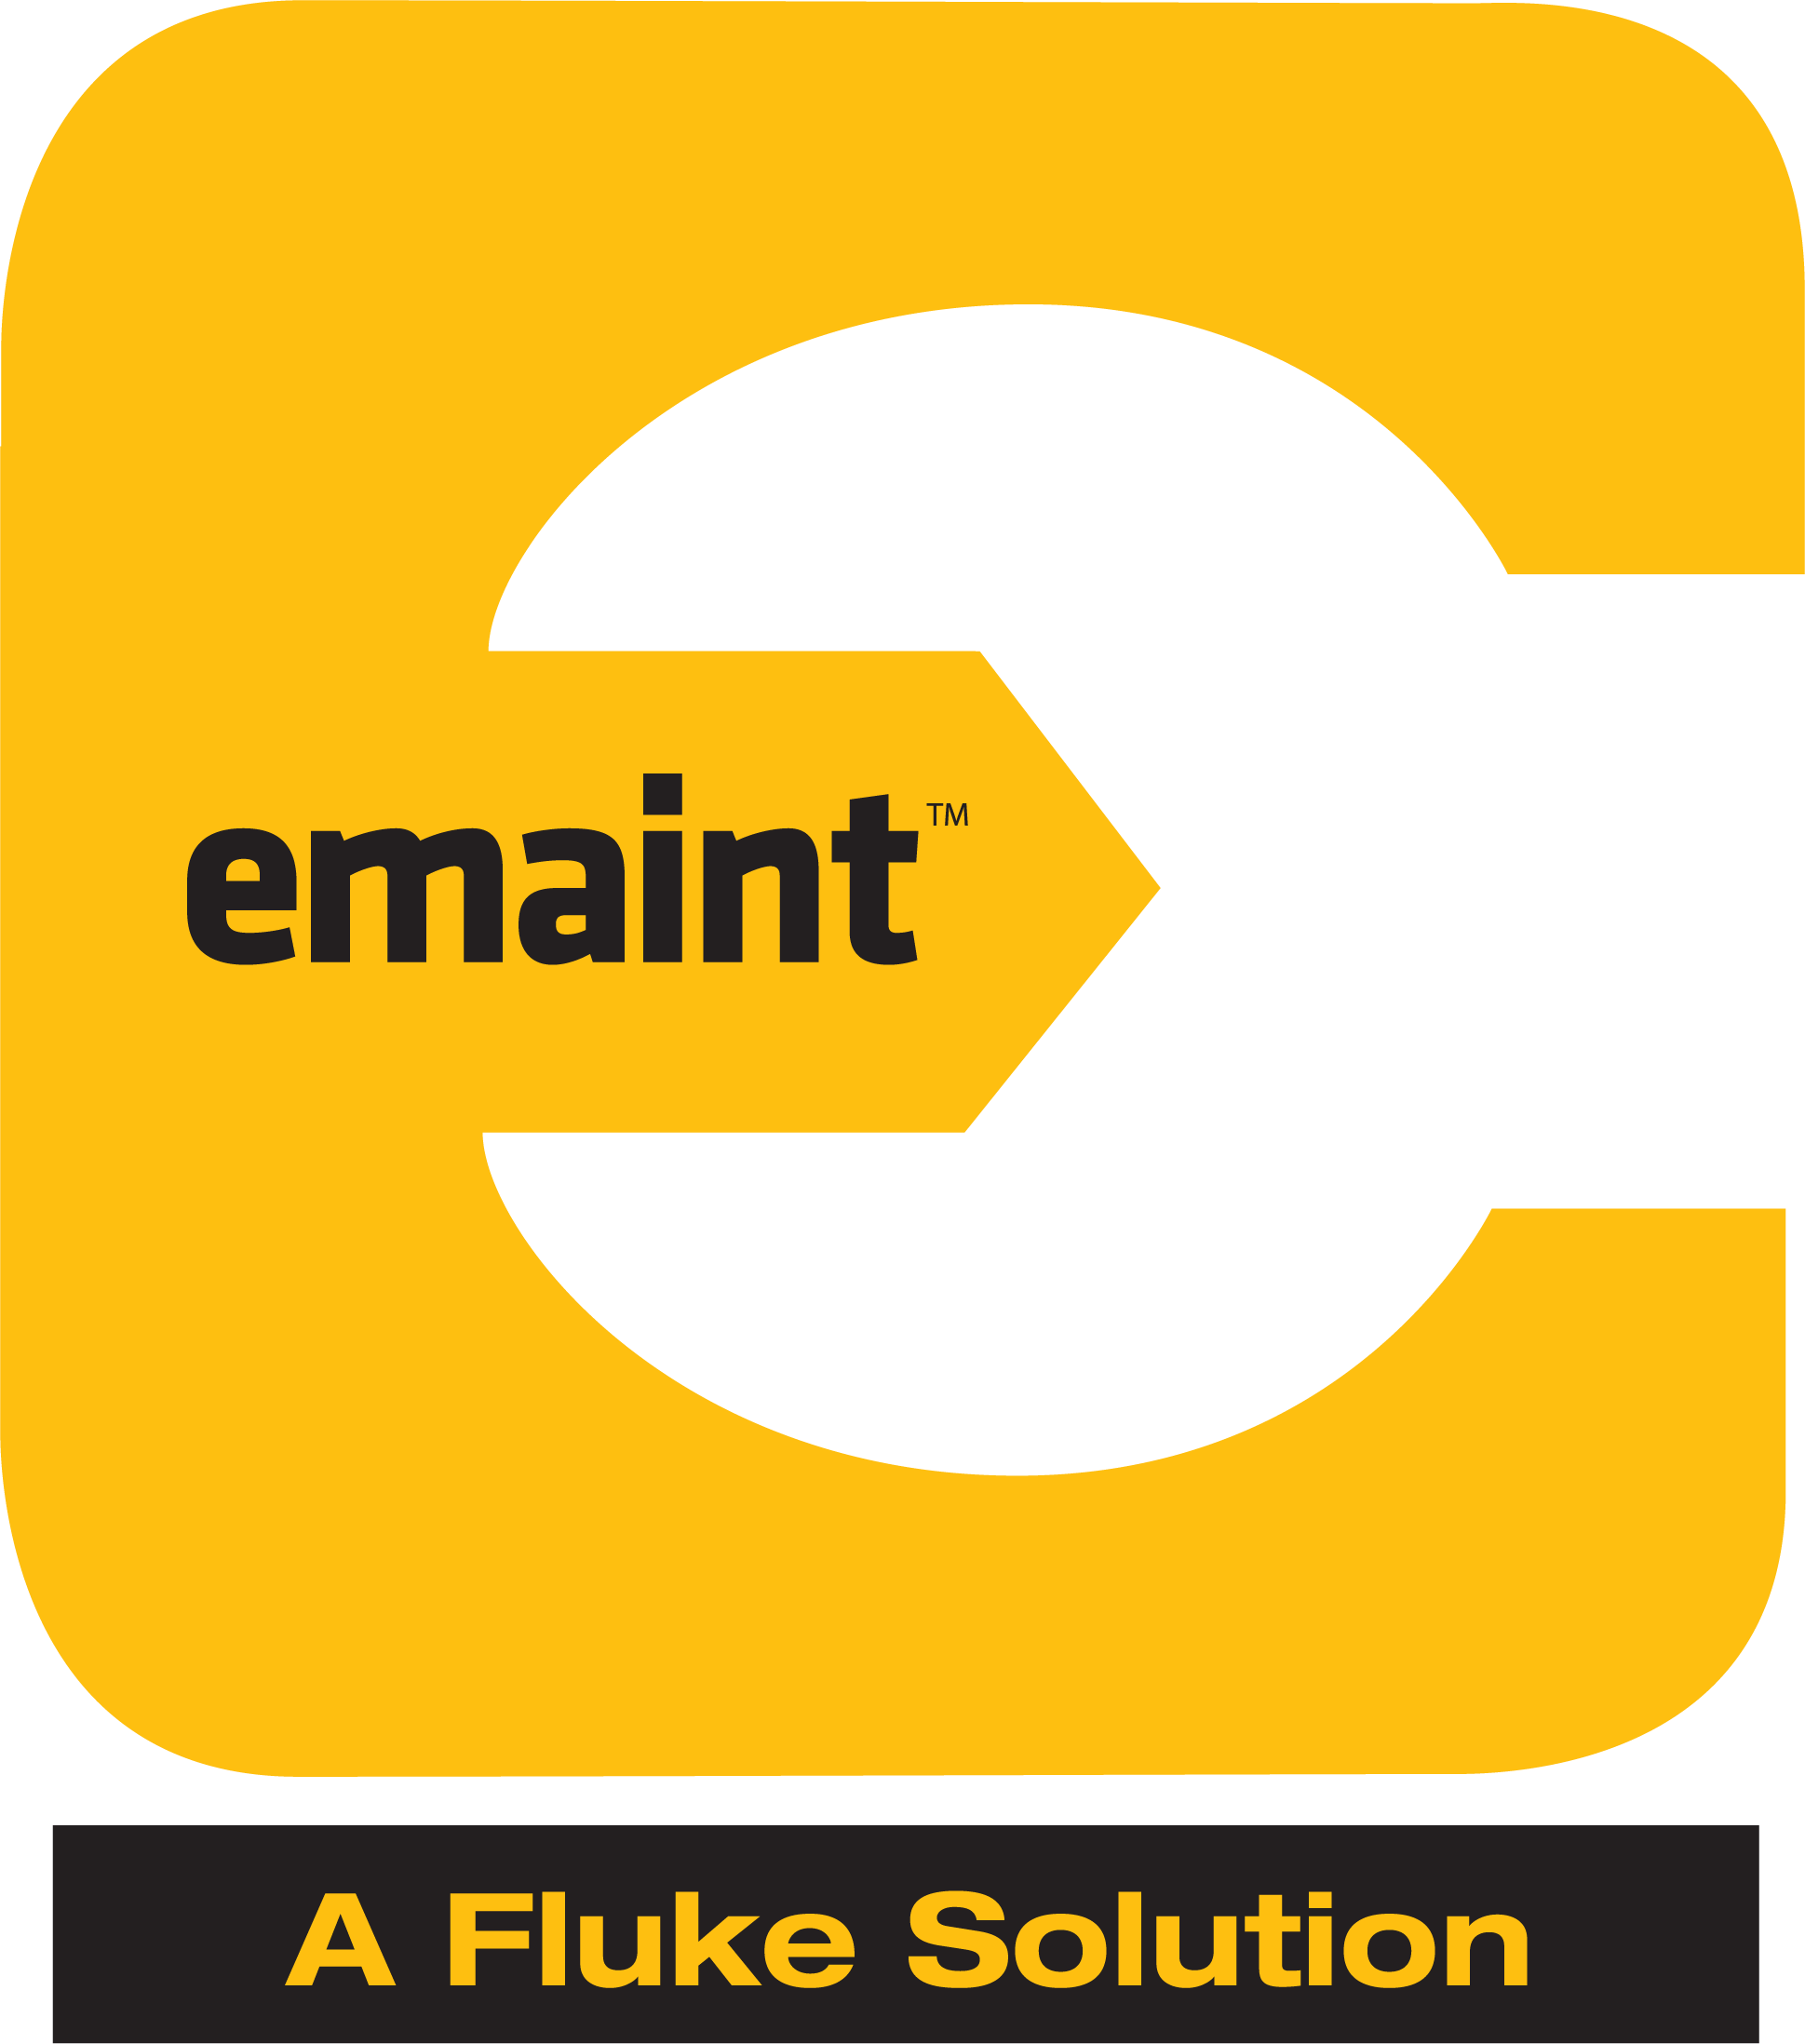 ROSMIMAN IWMS Global Site vs. eMaint CMMS